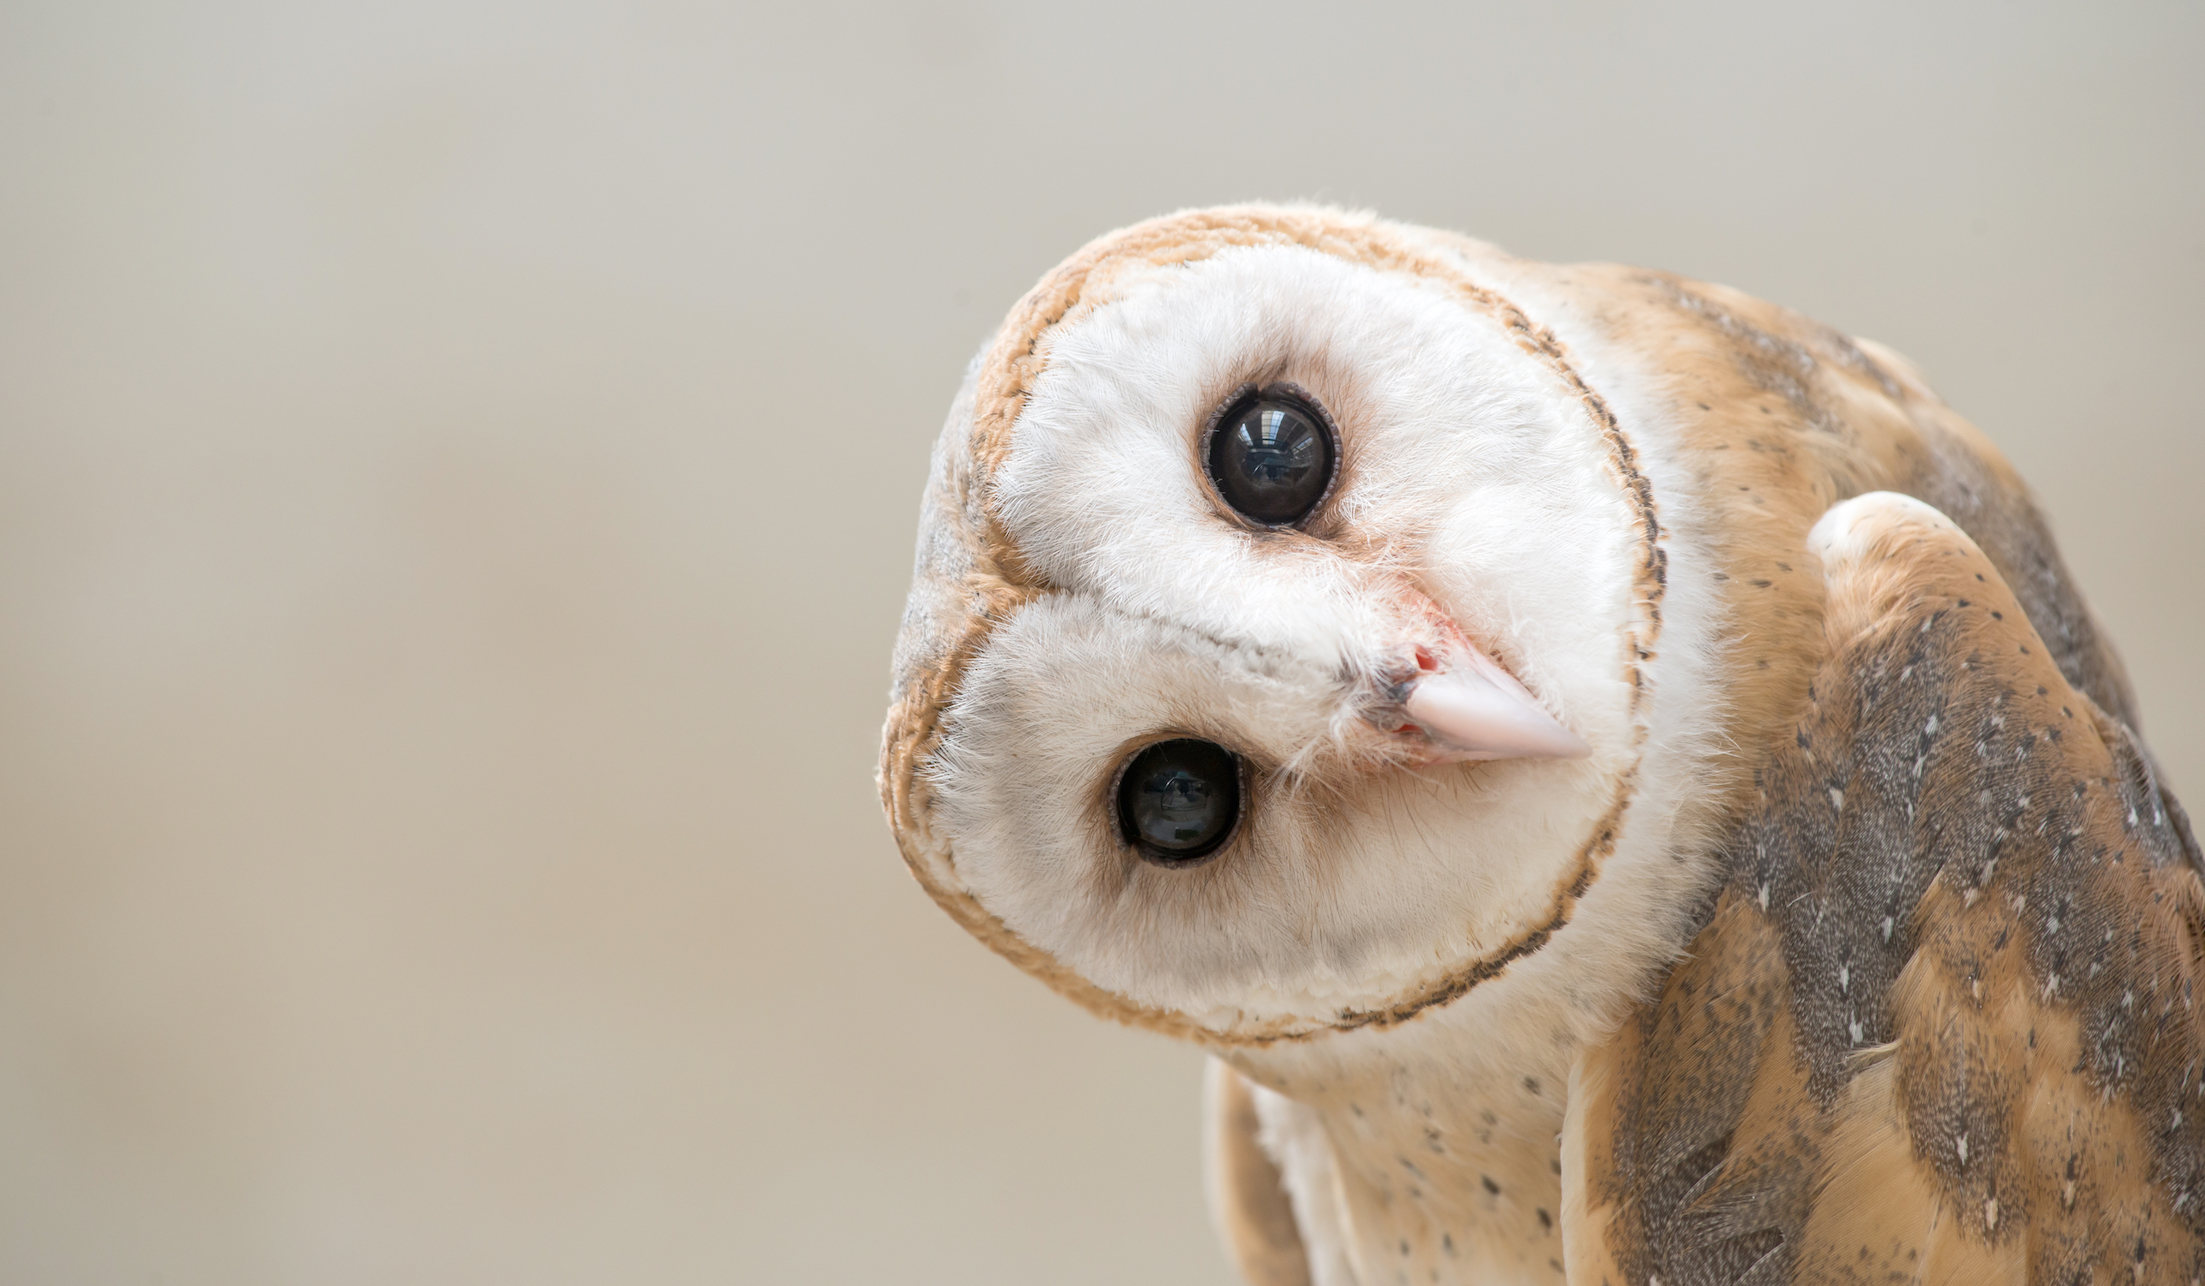 A new study suggests that humans and owls process visual details in a much more similar way than what was previously realized.